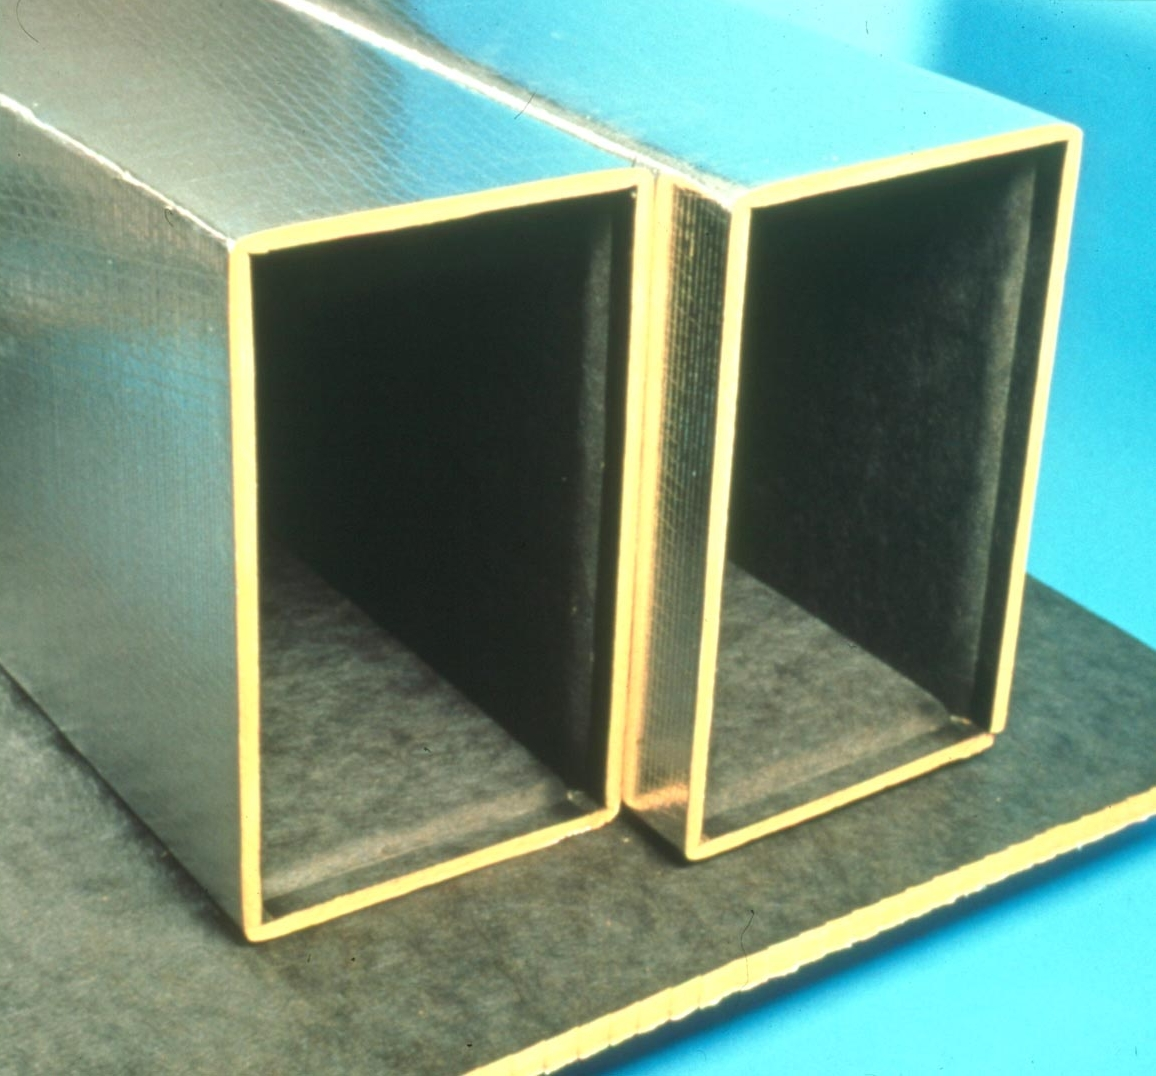 Certainteed Toughgard Tm Duct Board Features Tough